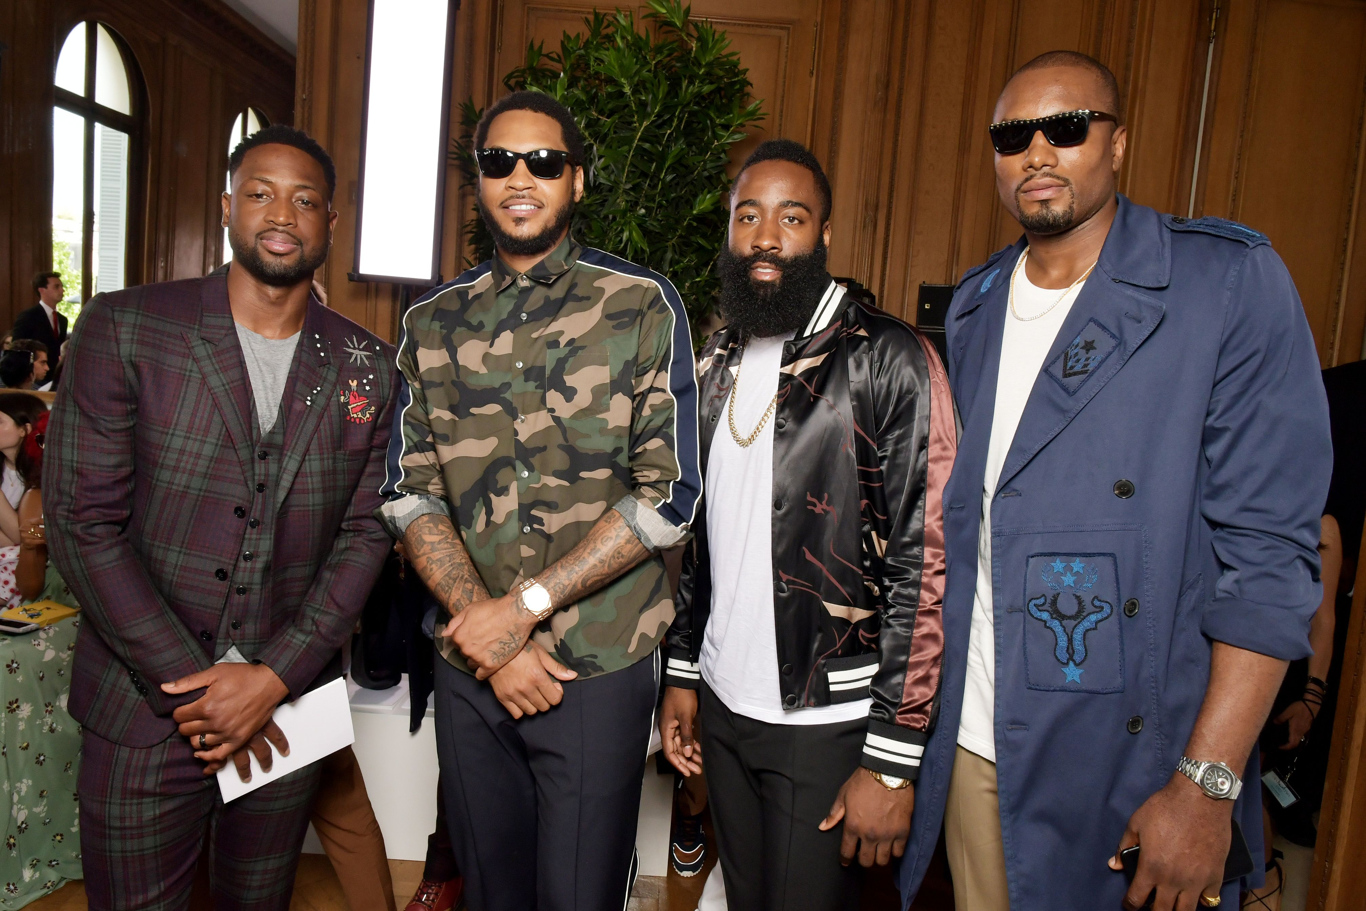 Dwyane Wade, Carmelo Anthony, James Harden and Serge Ibaka in the front rowValentino show, Spring Summer 2018, Paris Fashion Week Men's, France - 21 Jun 2017